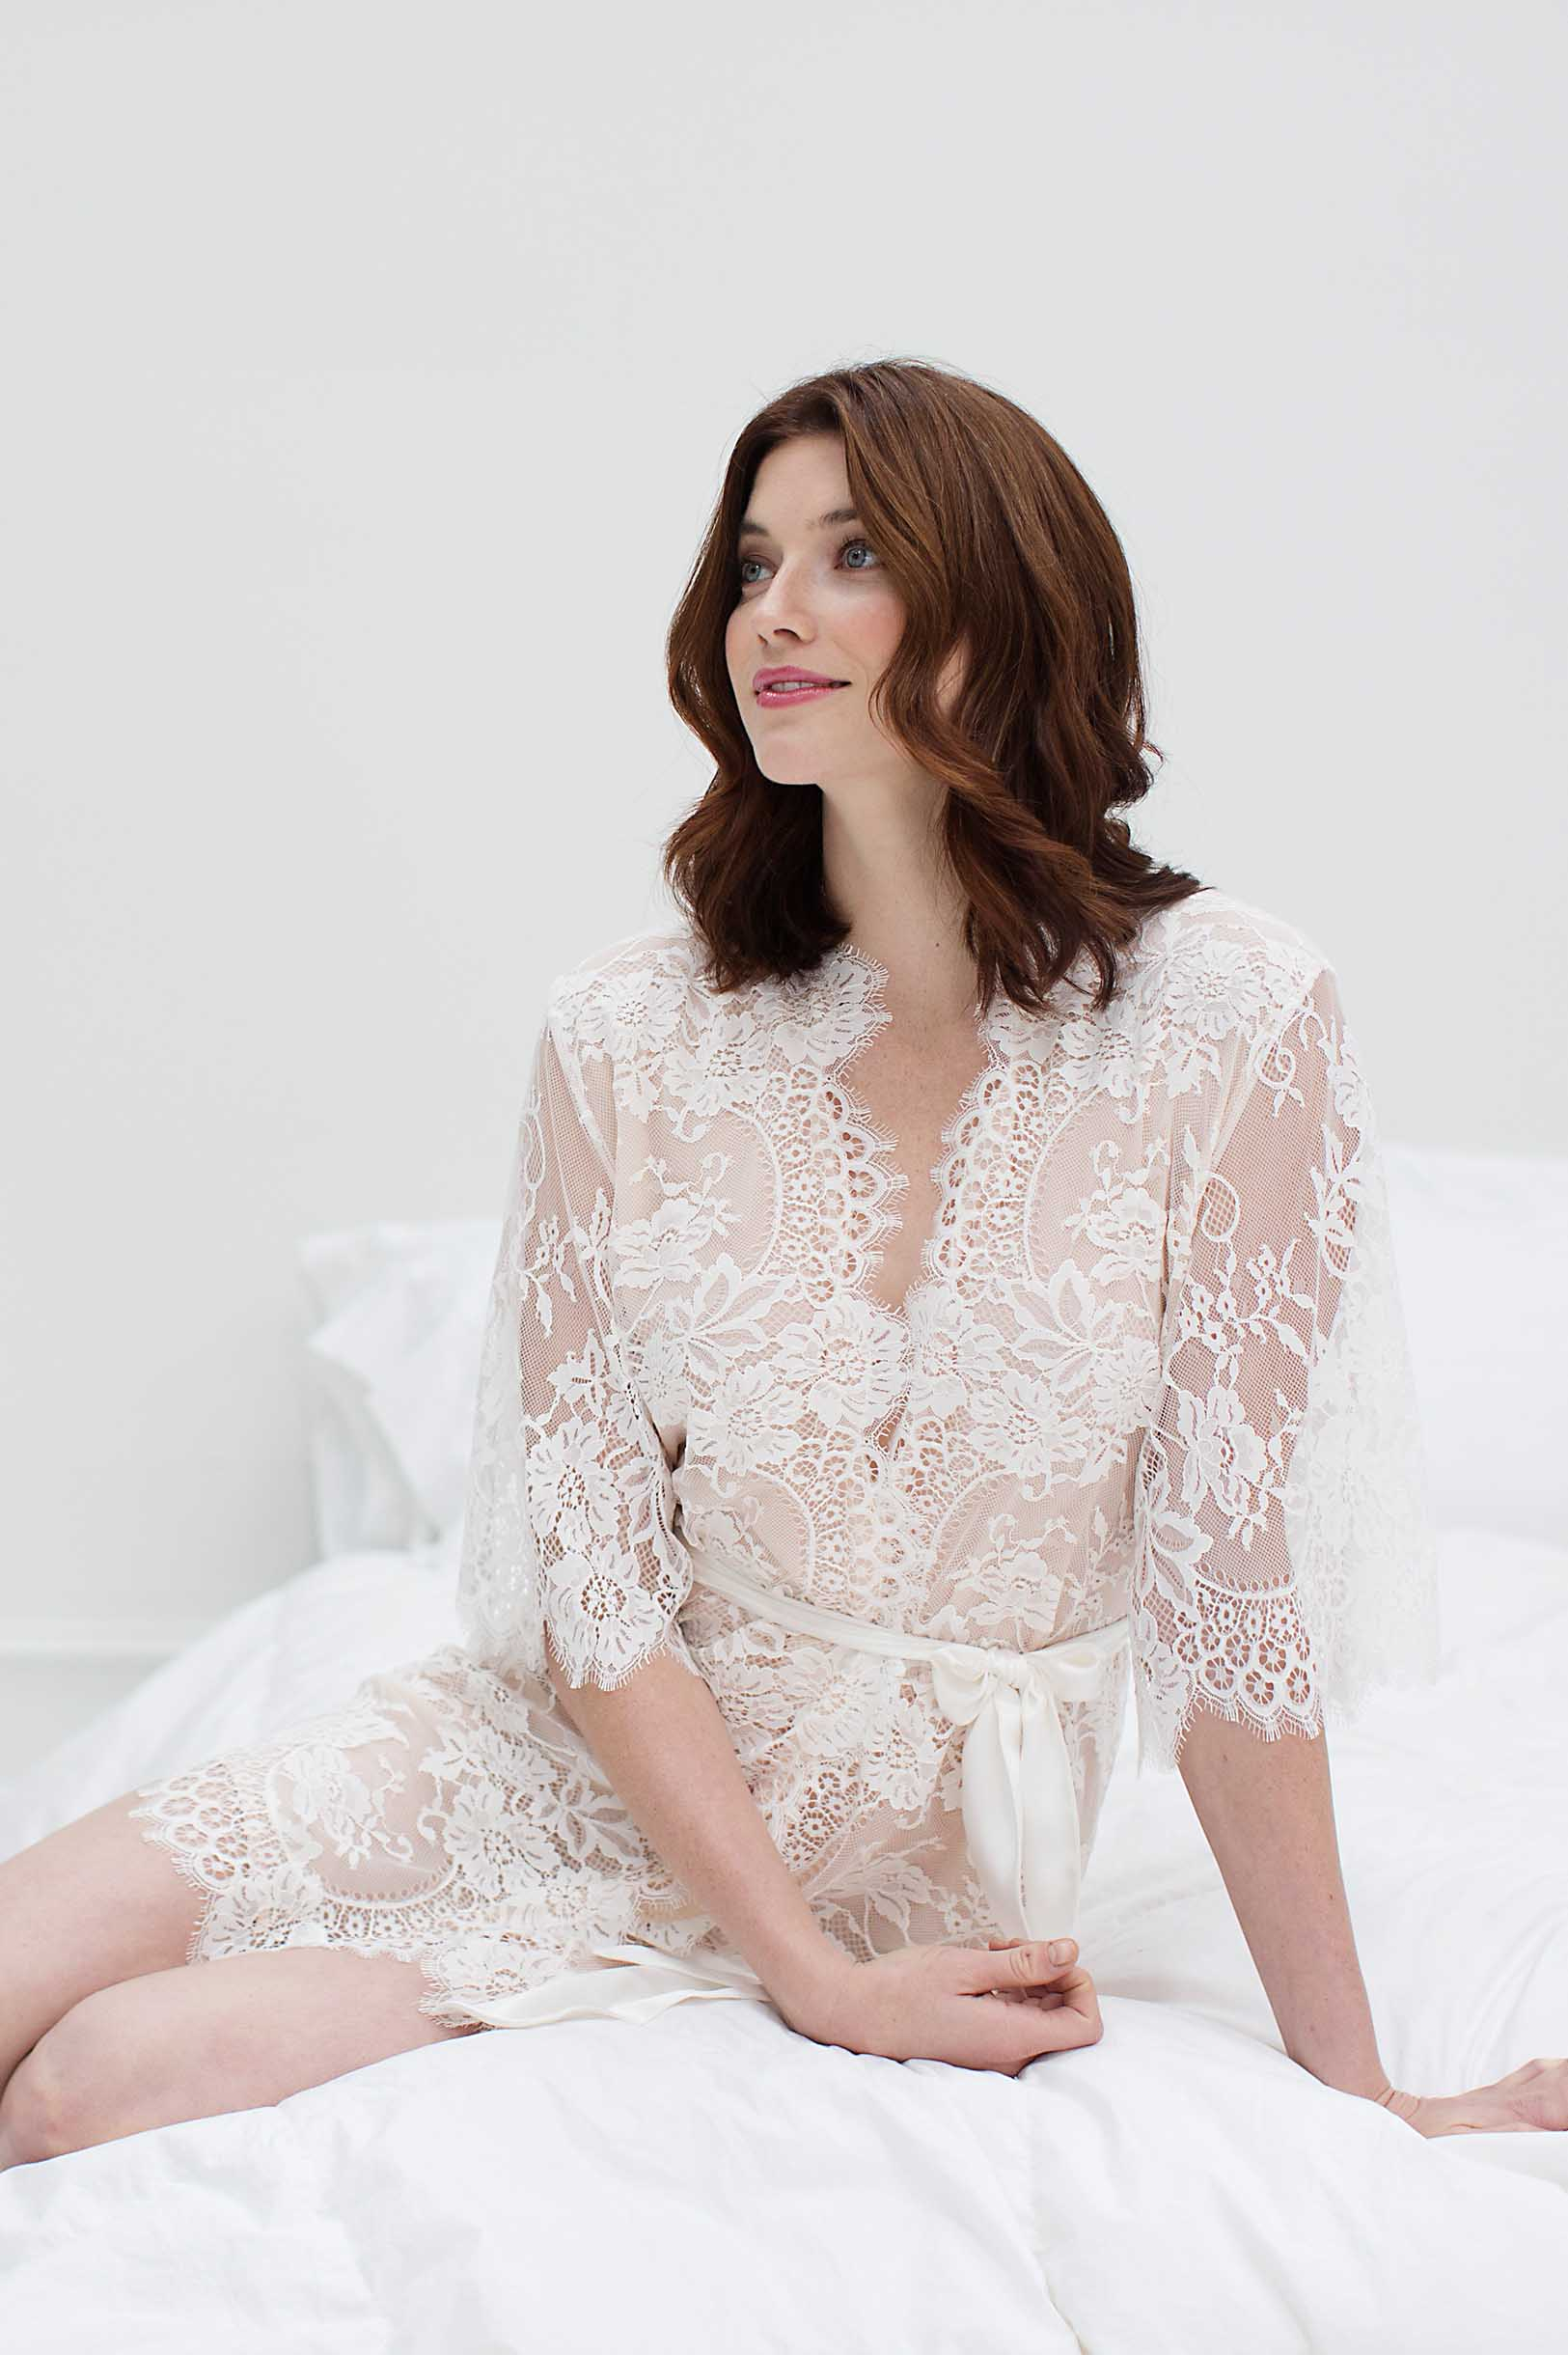 Swan Queen lace robe ivory blush lined 104SH getting ready wedding day.jpg